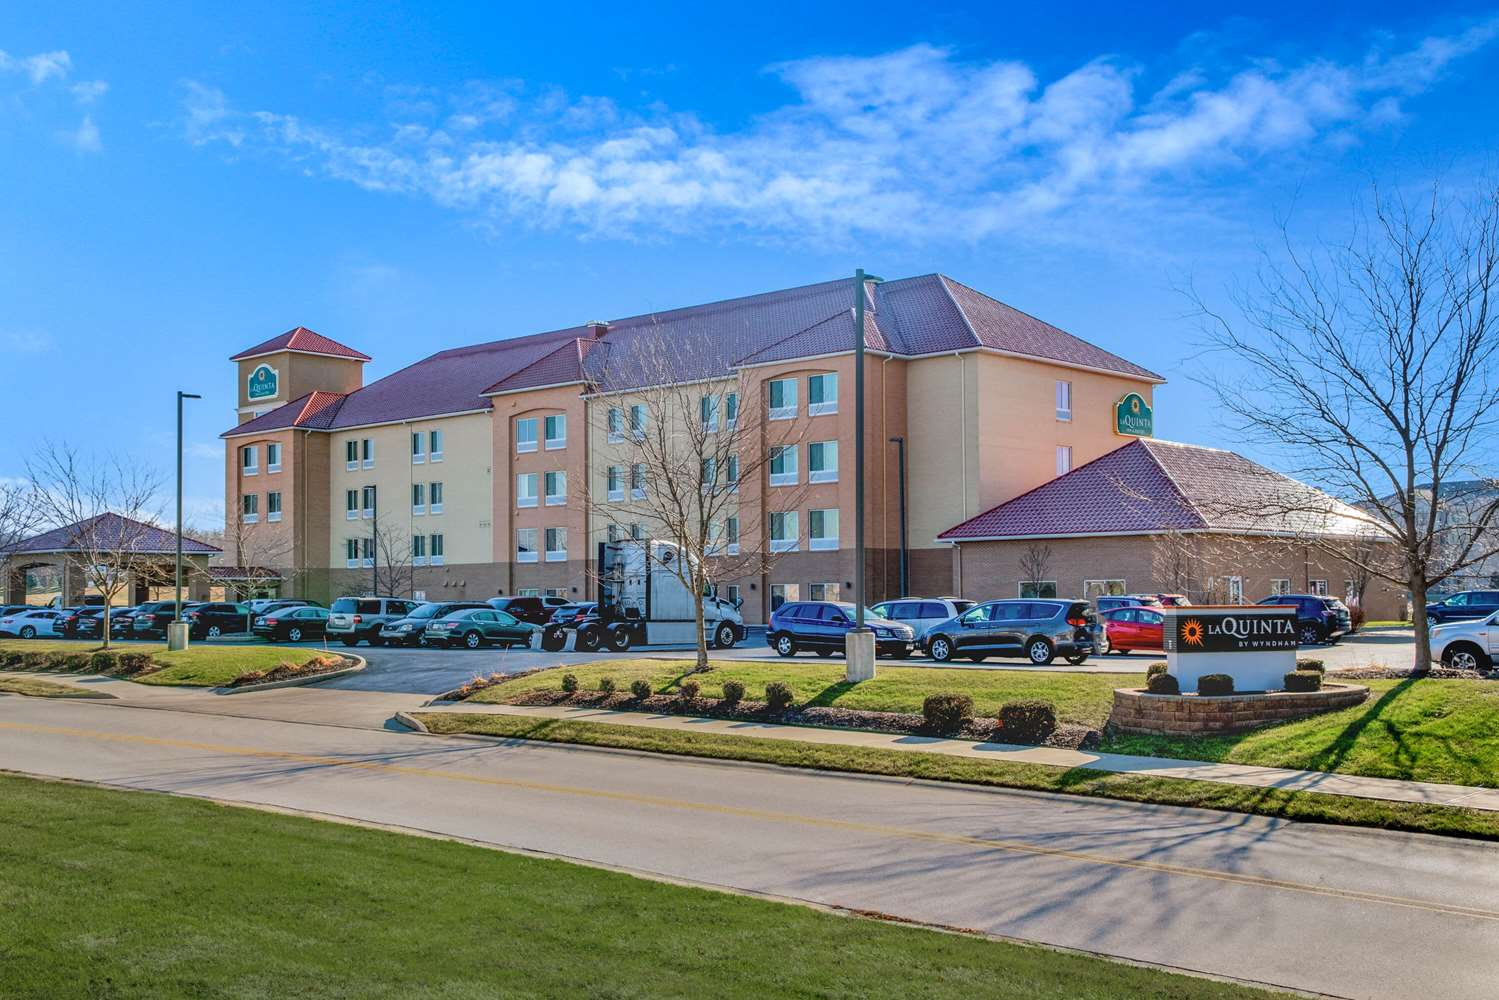 La Quinta Inn & Suites Airport Plainfield